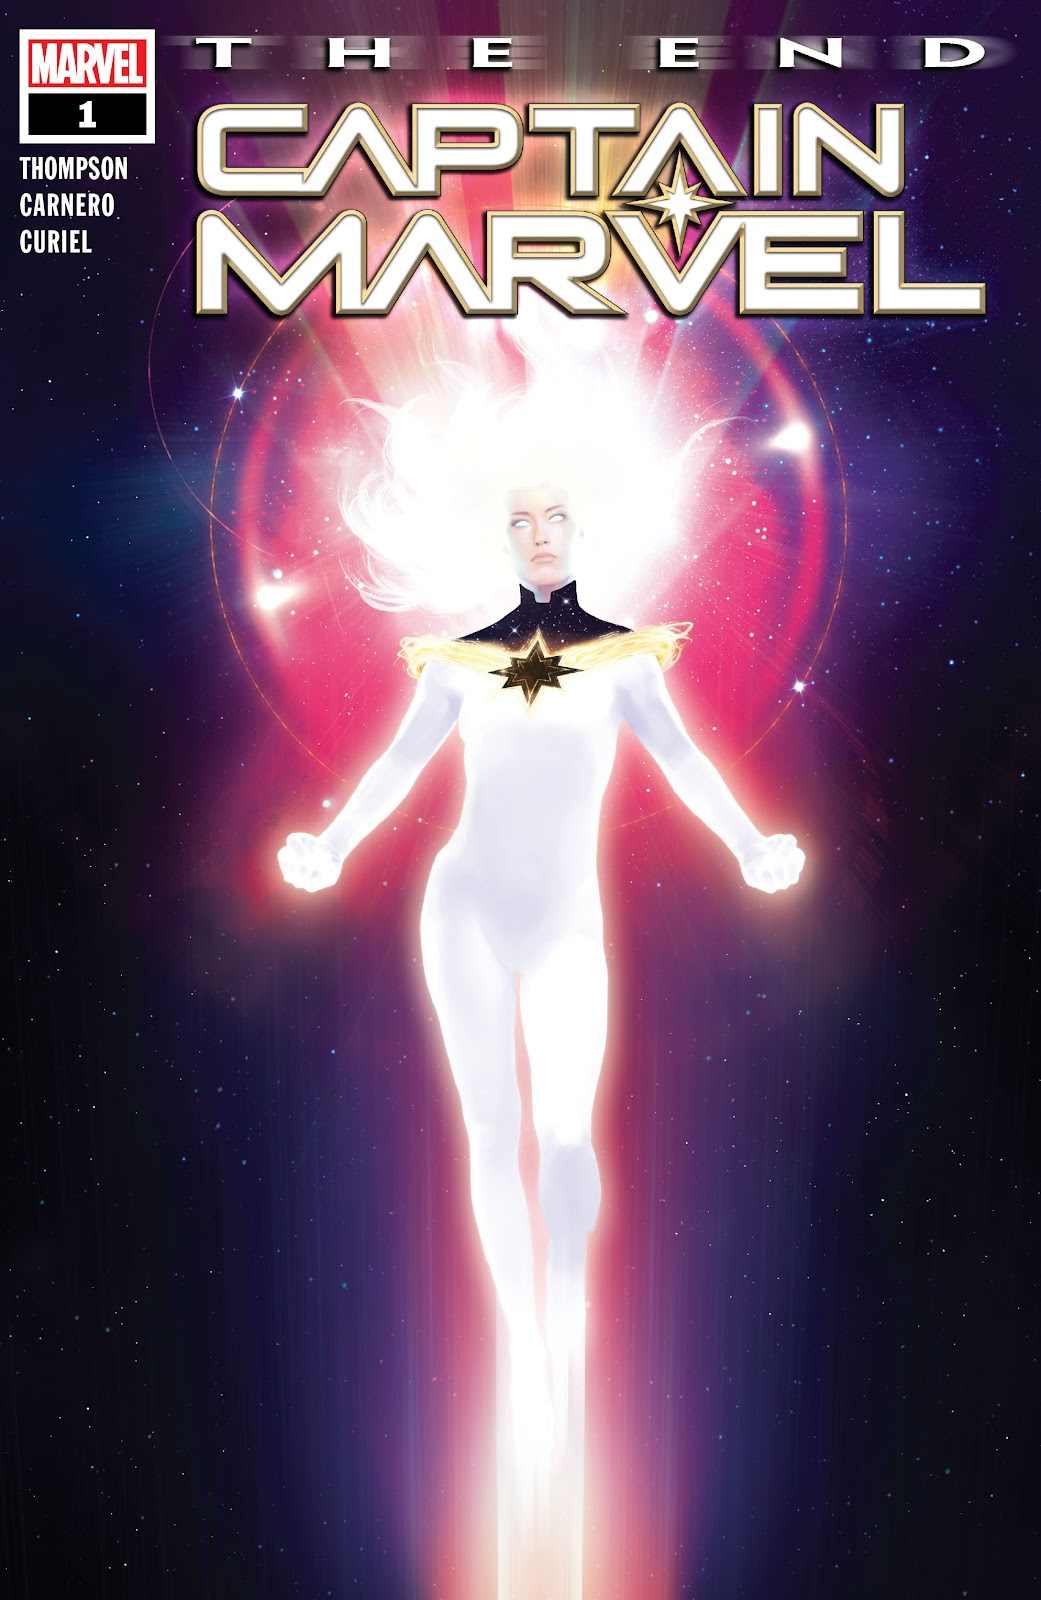 Read online Captain Marvel: The End comic -  Issue # Full - 1